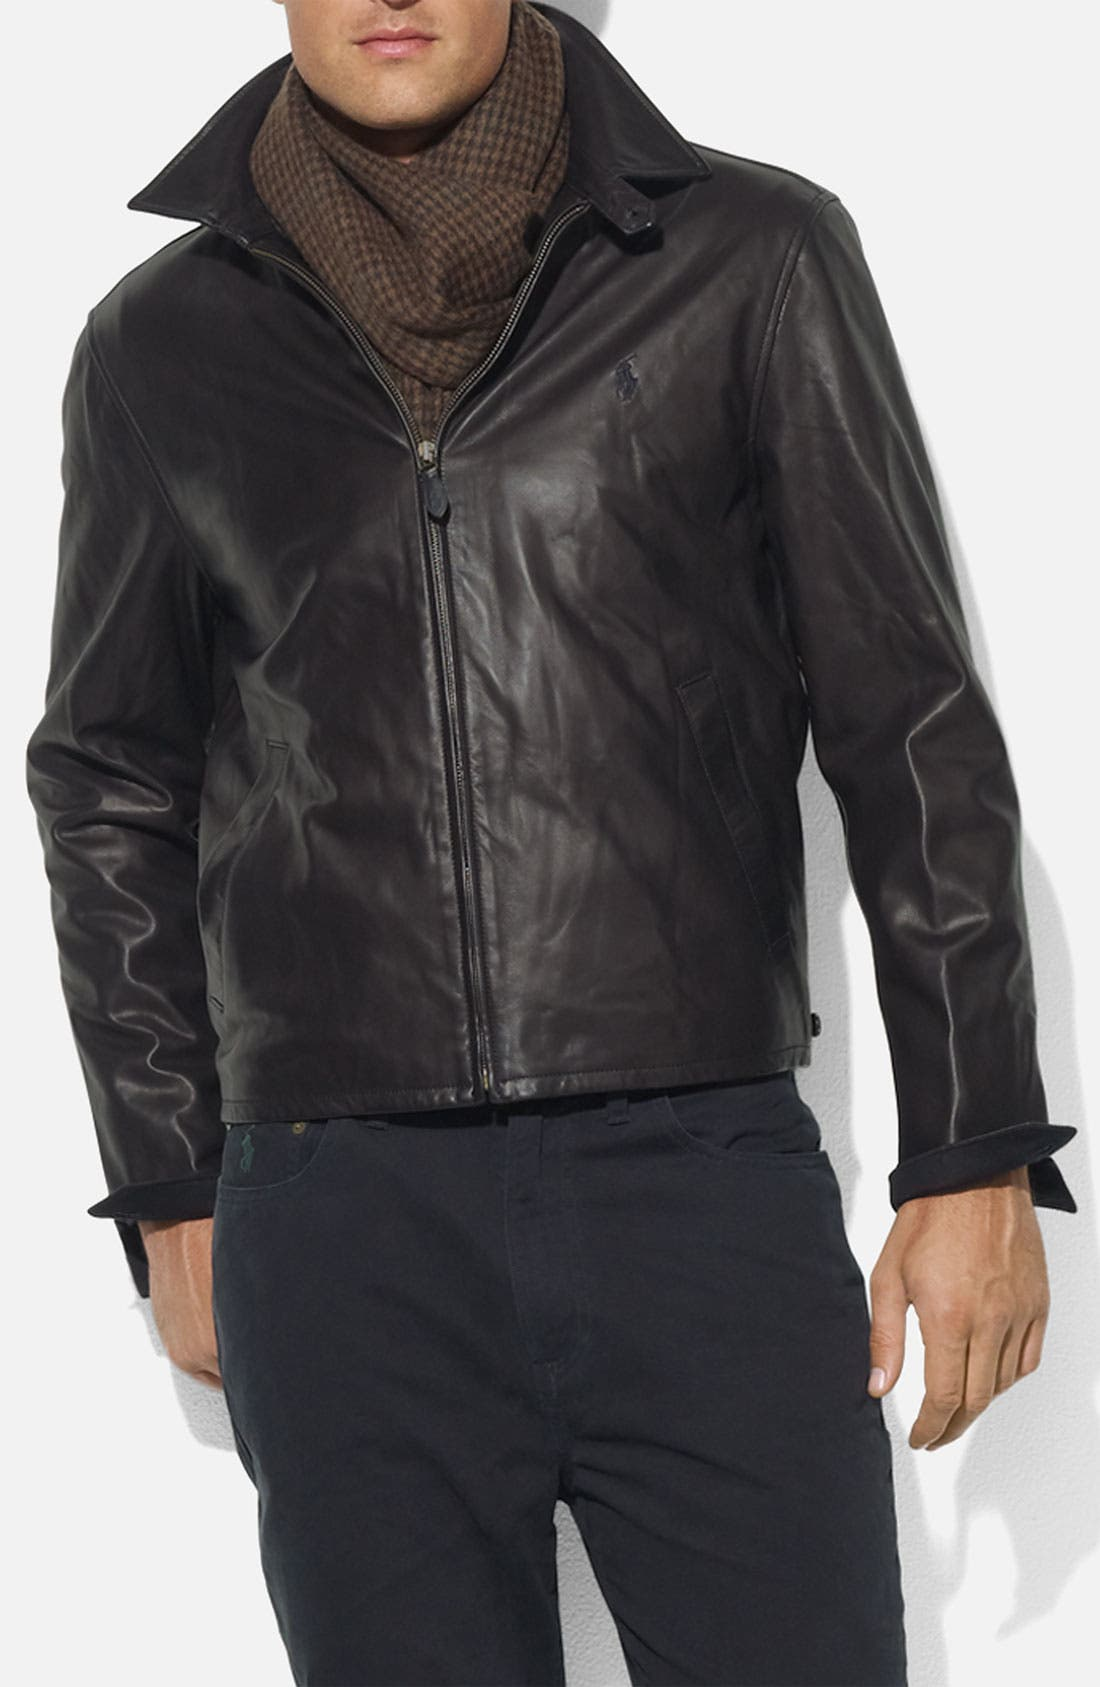 Main Image - Polo Ralph Lauren Leather Jacket